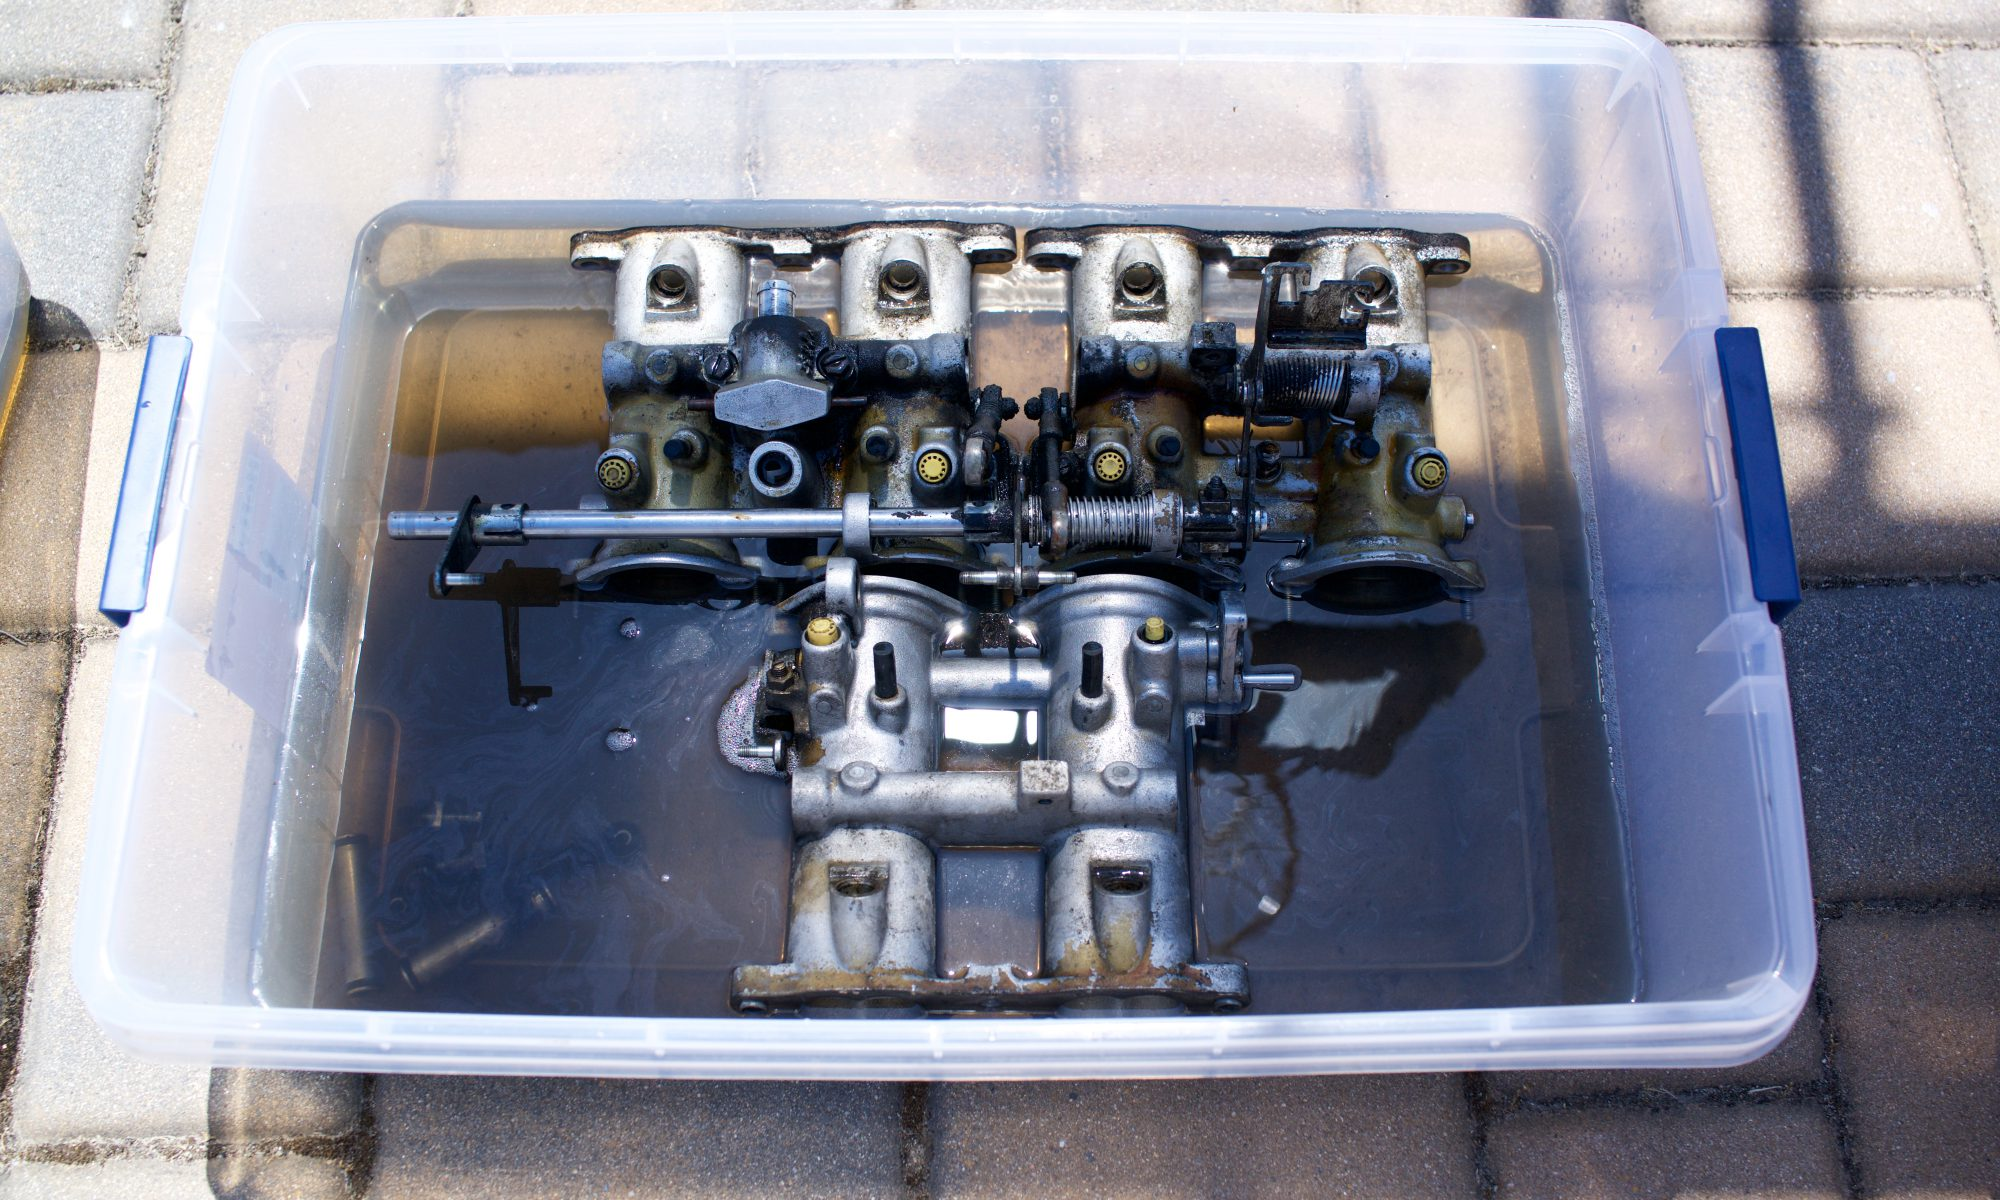 Clean Valve Cover and Entire Intake System | 1988 BMW E28 M5